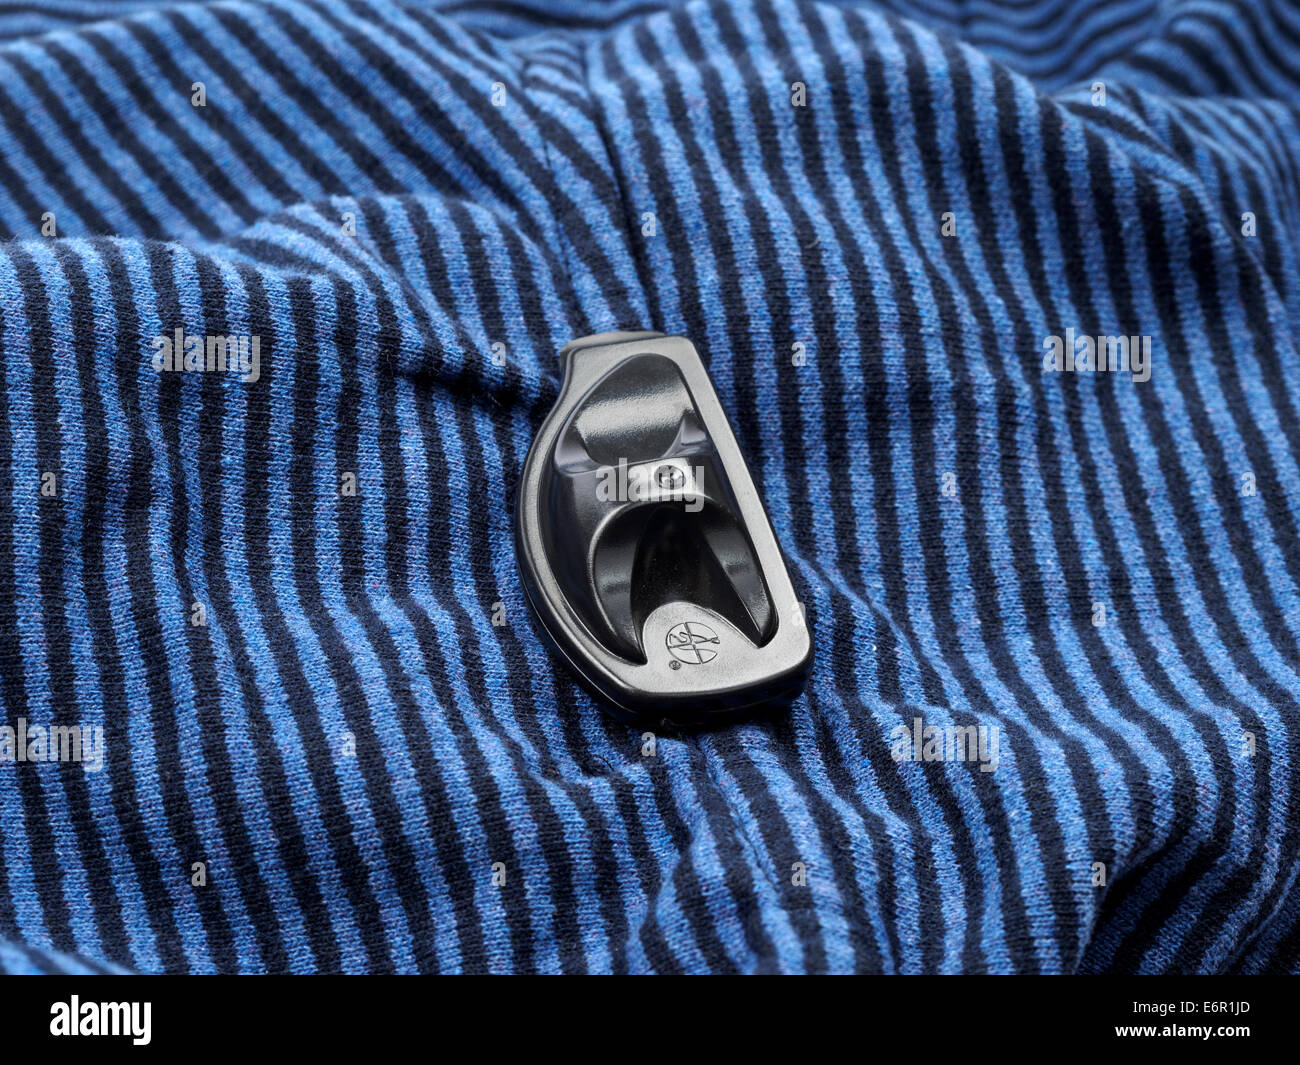 Close up of store security tag on clothing used to prevent theft - Stock Image